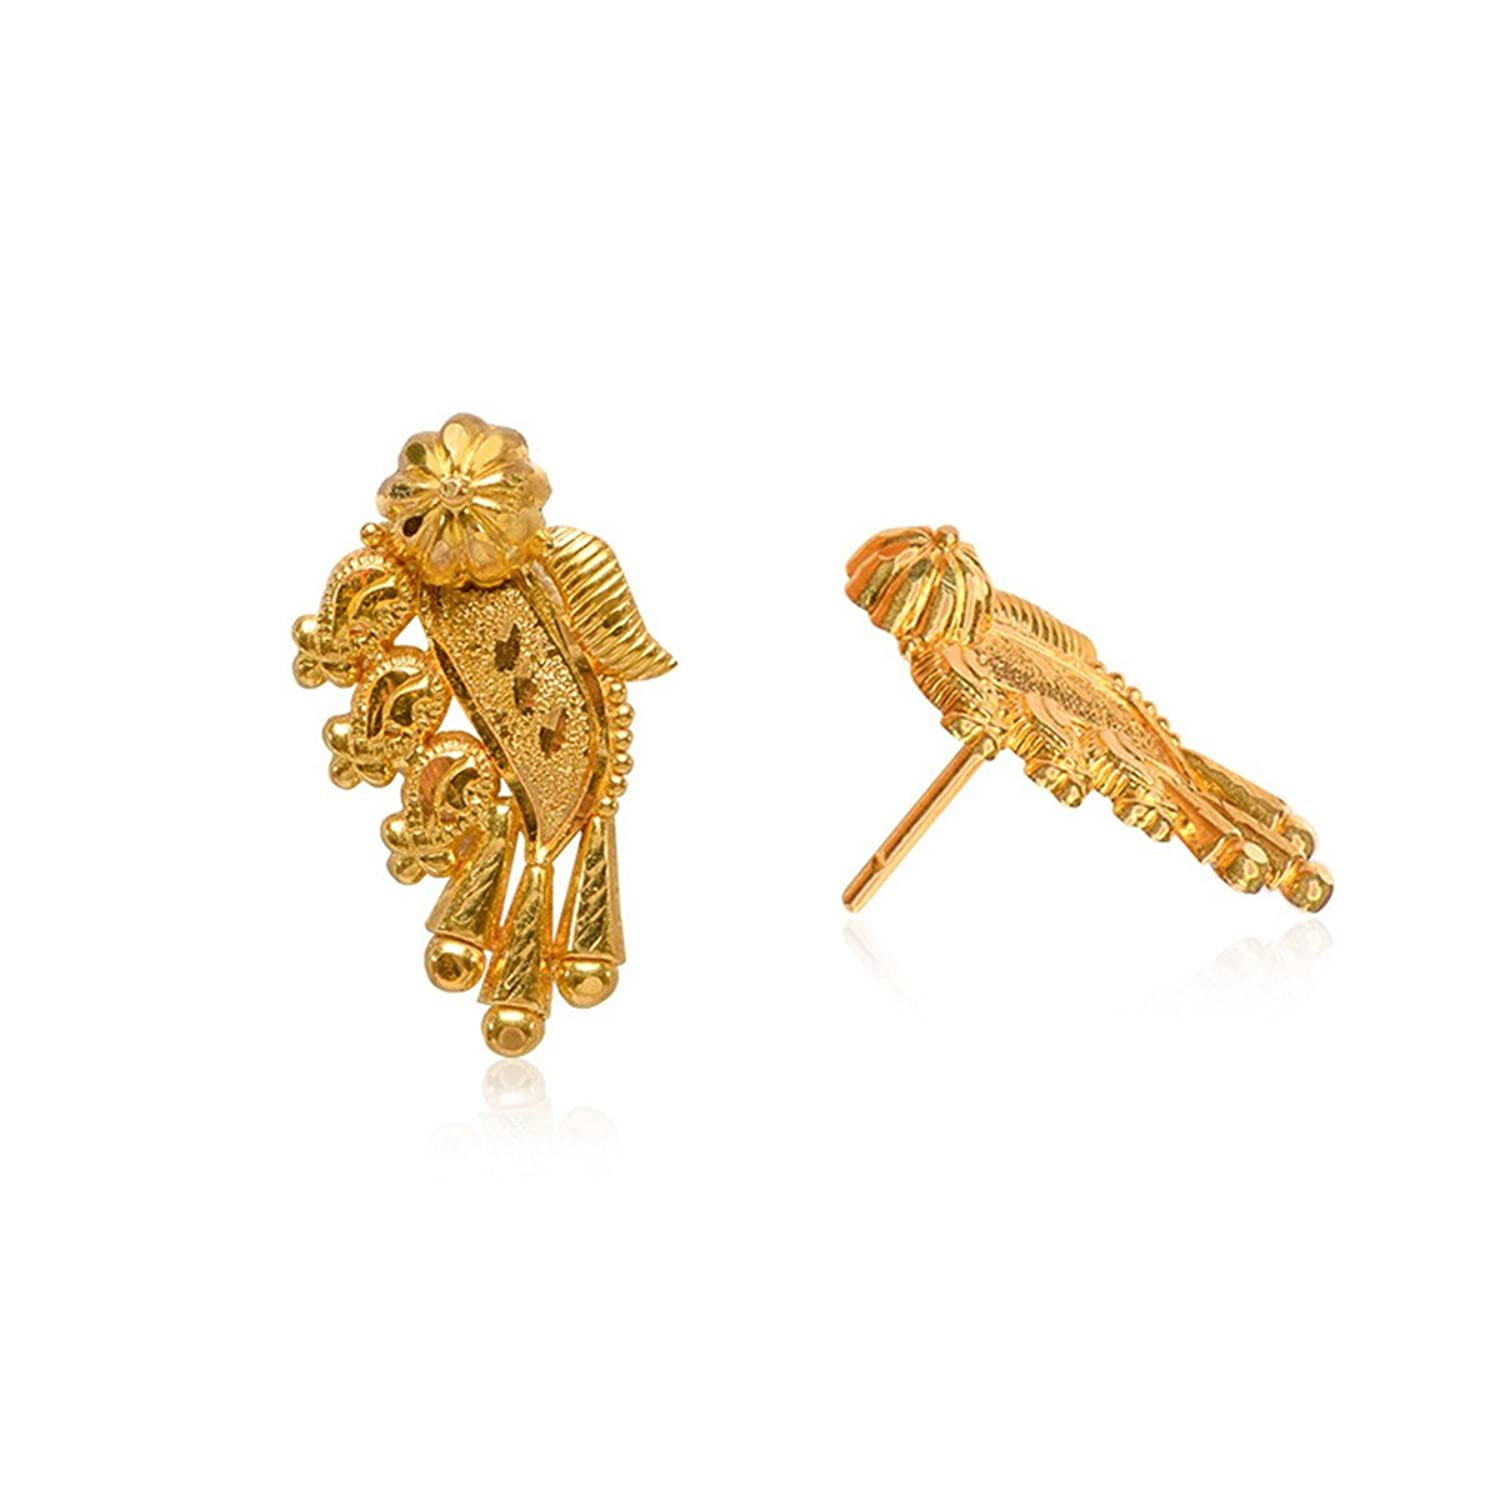 Buy Senco Gold 22k (916) Yellow Gold Stud Earrings Online at Low ...